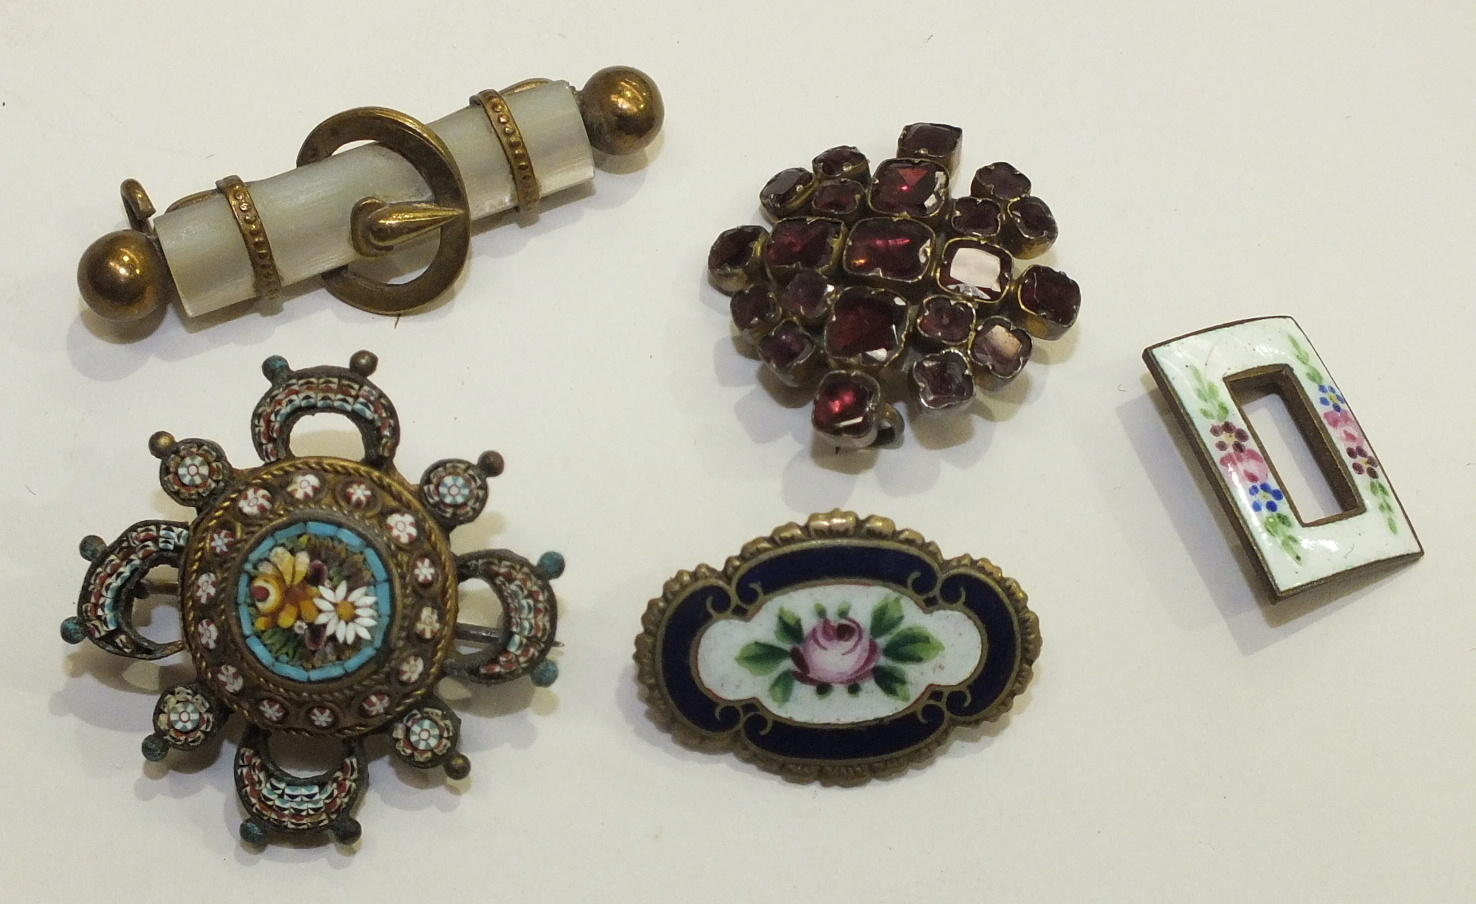 Lot 129 - An early-19th century garnet brooch, a micro-mosaic brooch and other items of jewellery and